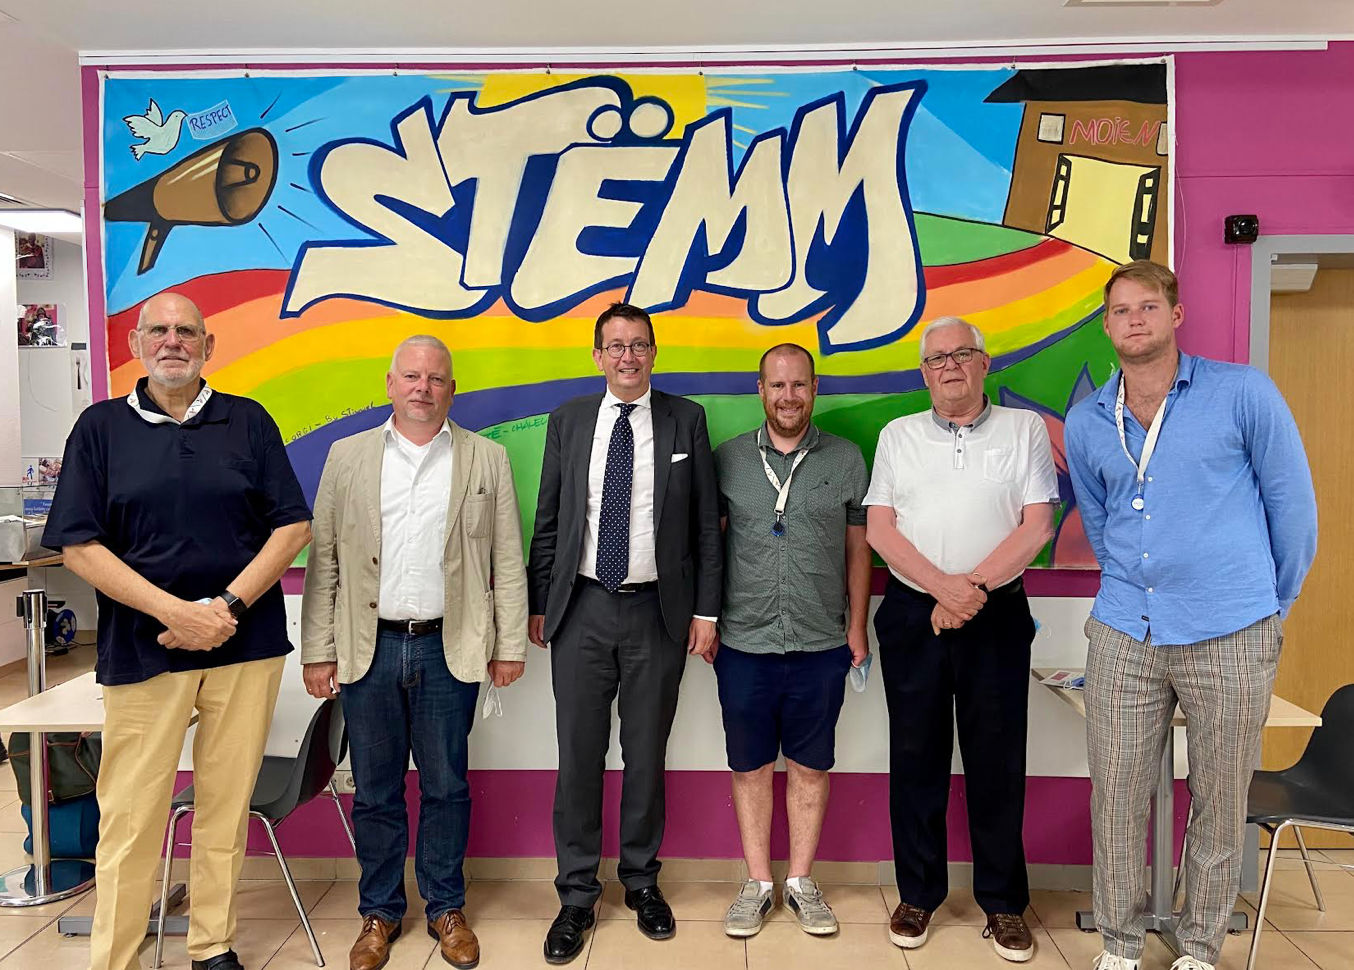 The City of Luxembourg and the non-profit organisation Stëmm vun der Strooss continue their efforts to help disadvantaged people